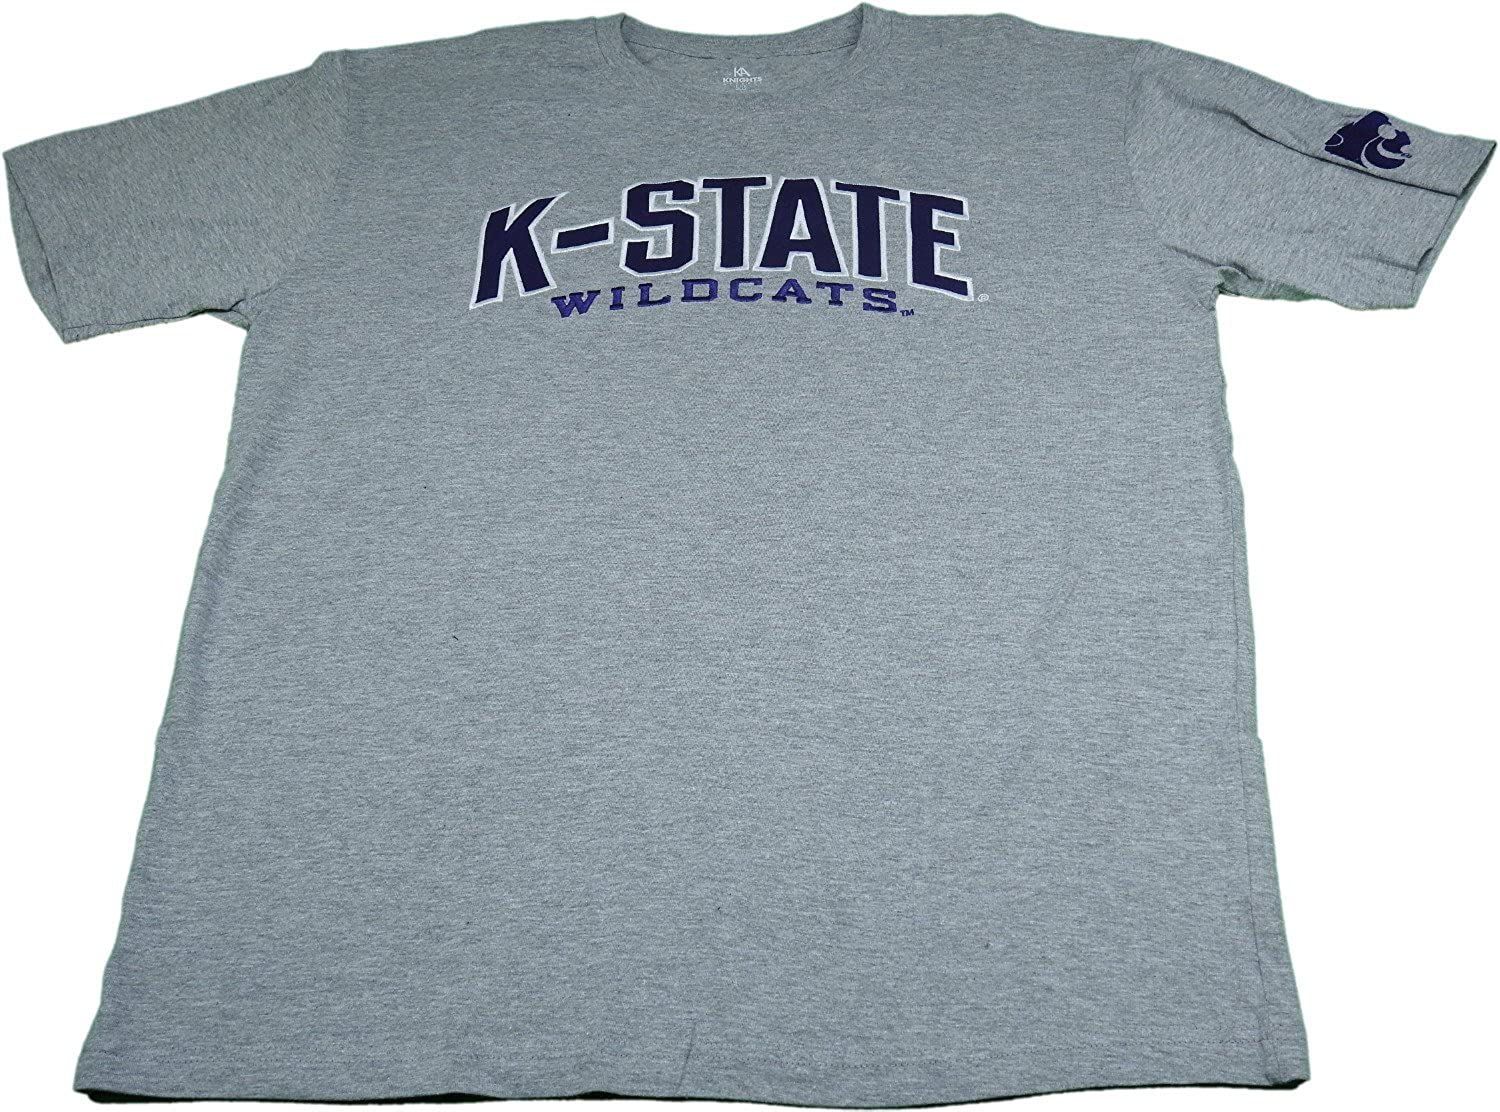 Amazon.com  Knights Apparel Mens Size Large K-State Wildcats T-Shirt ... 83ee8014142a